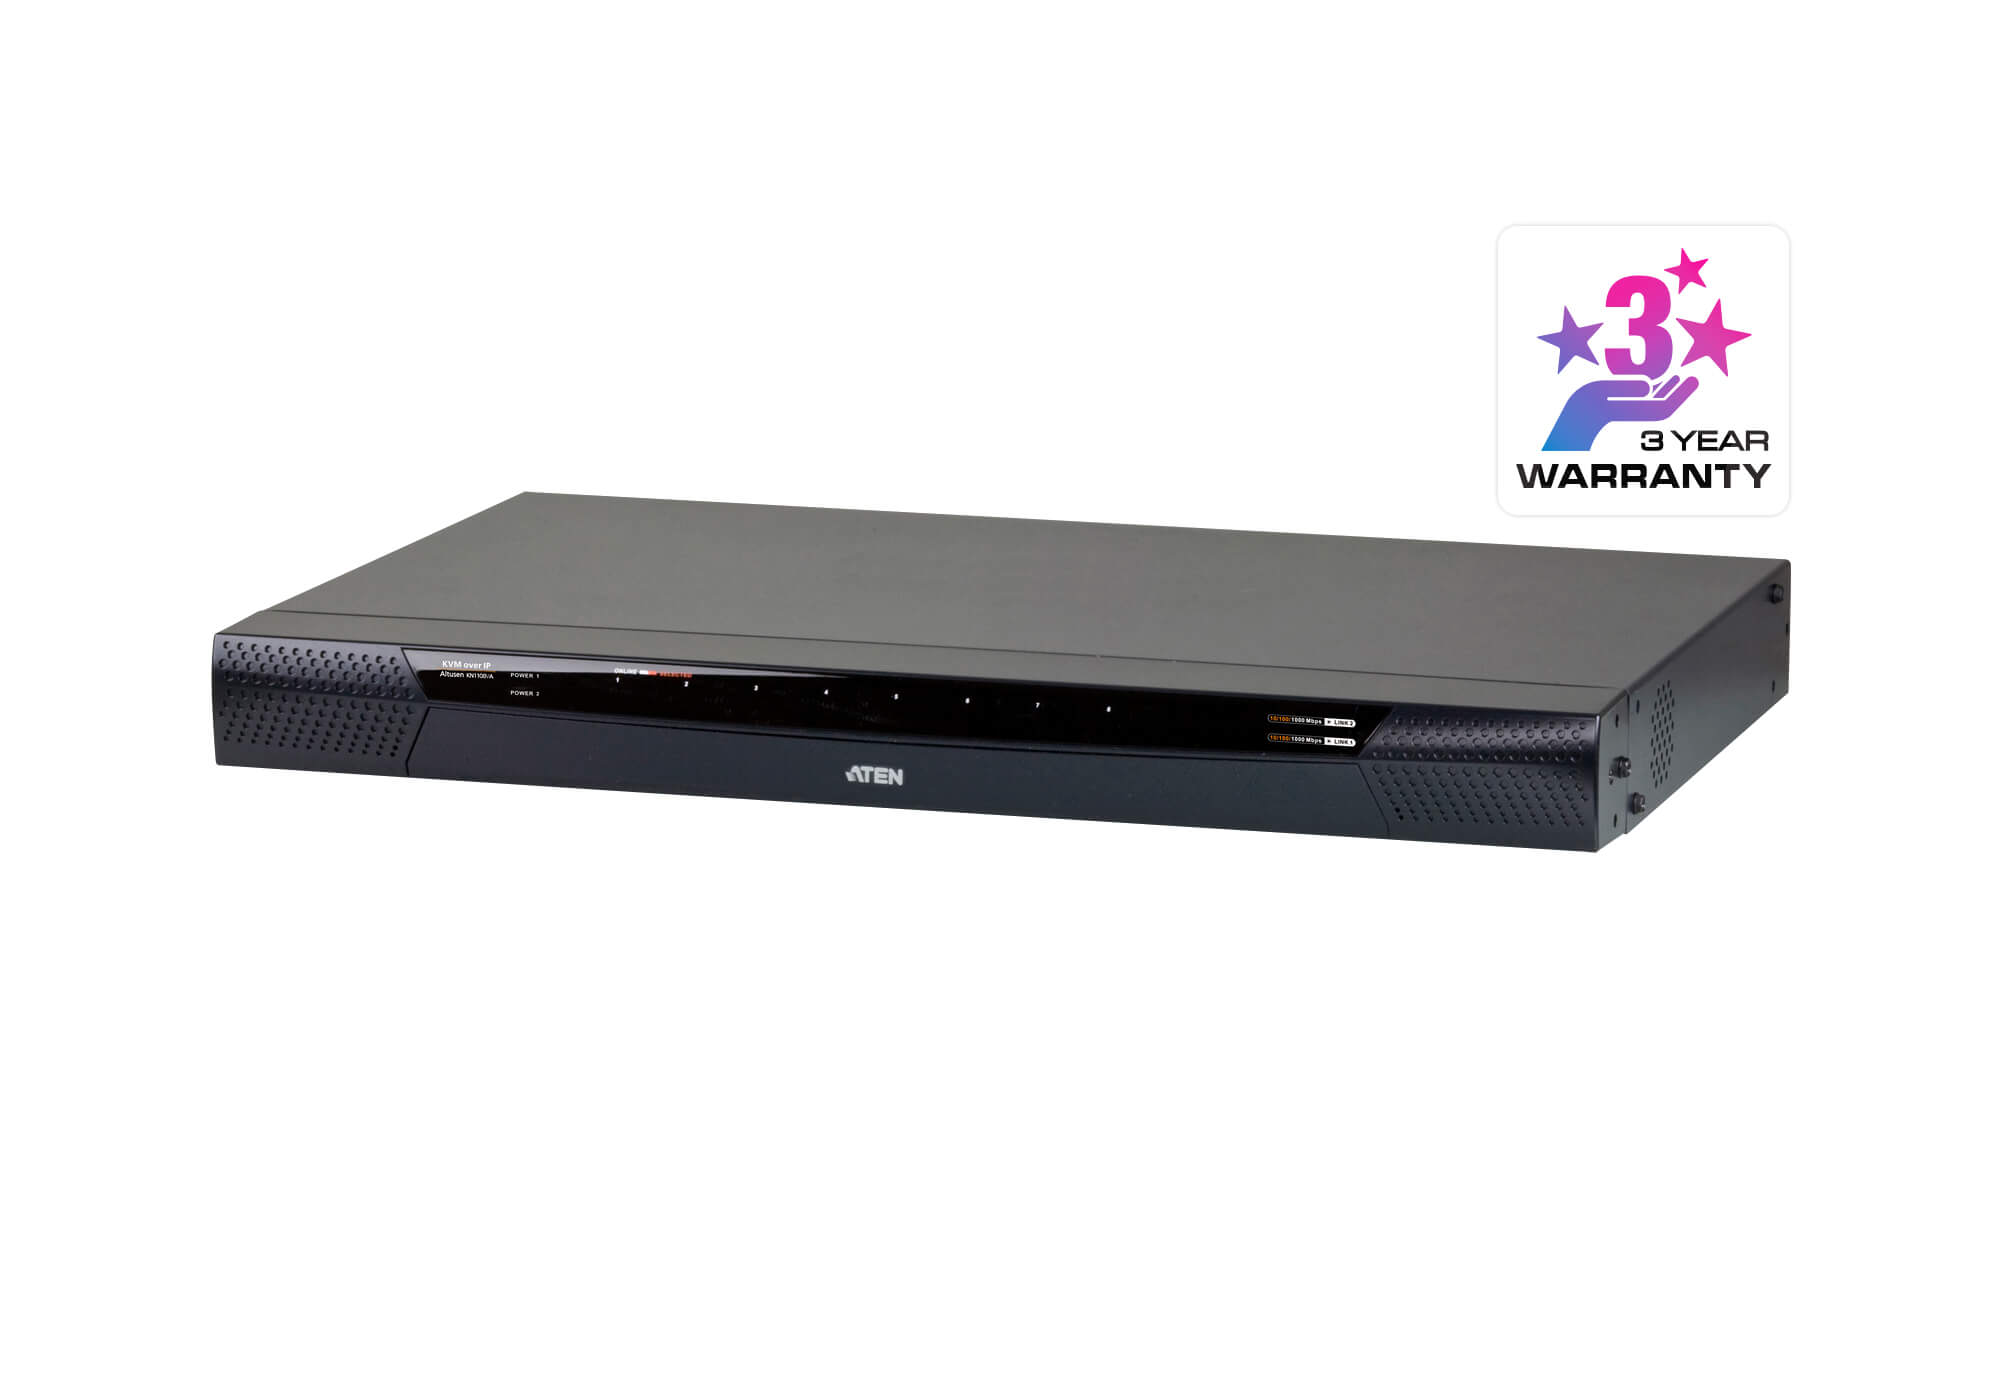 1-Local/1-Remote Access 8-Port Cat 5 KVM over IP Switch with Virtual Media (1920 x 1200)-1